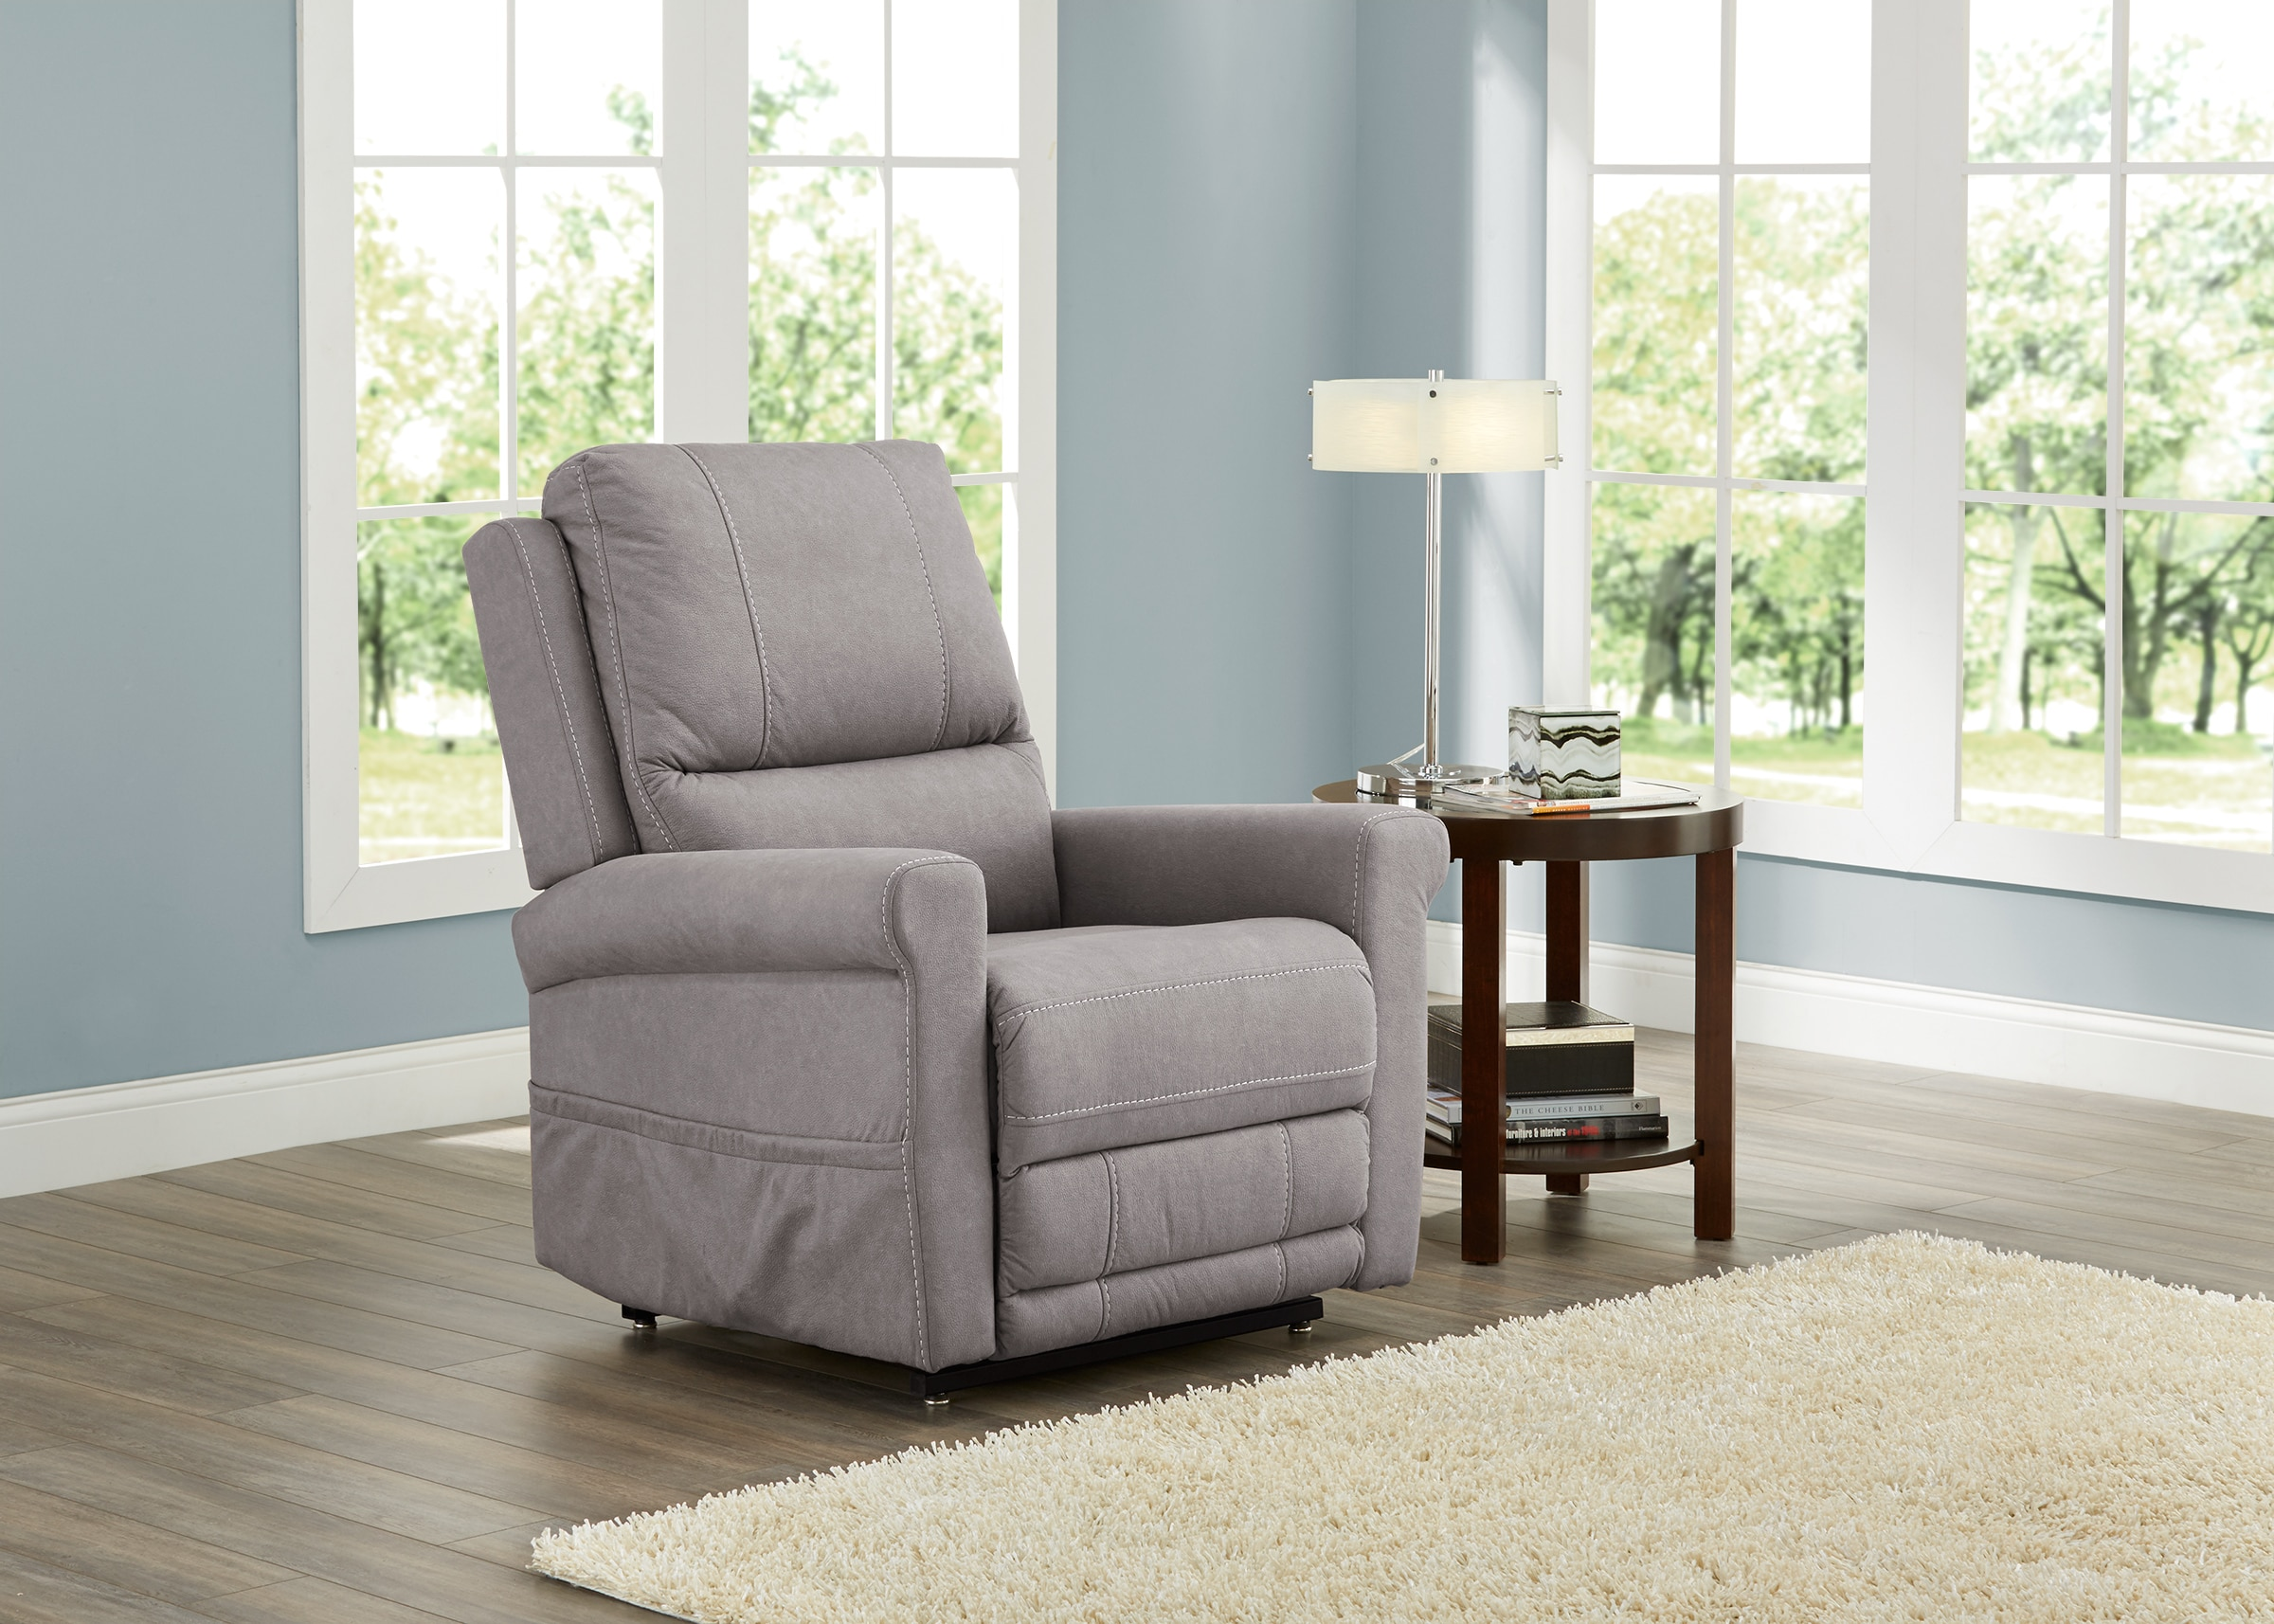 Power Lift Chairs Recliners